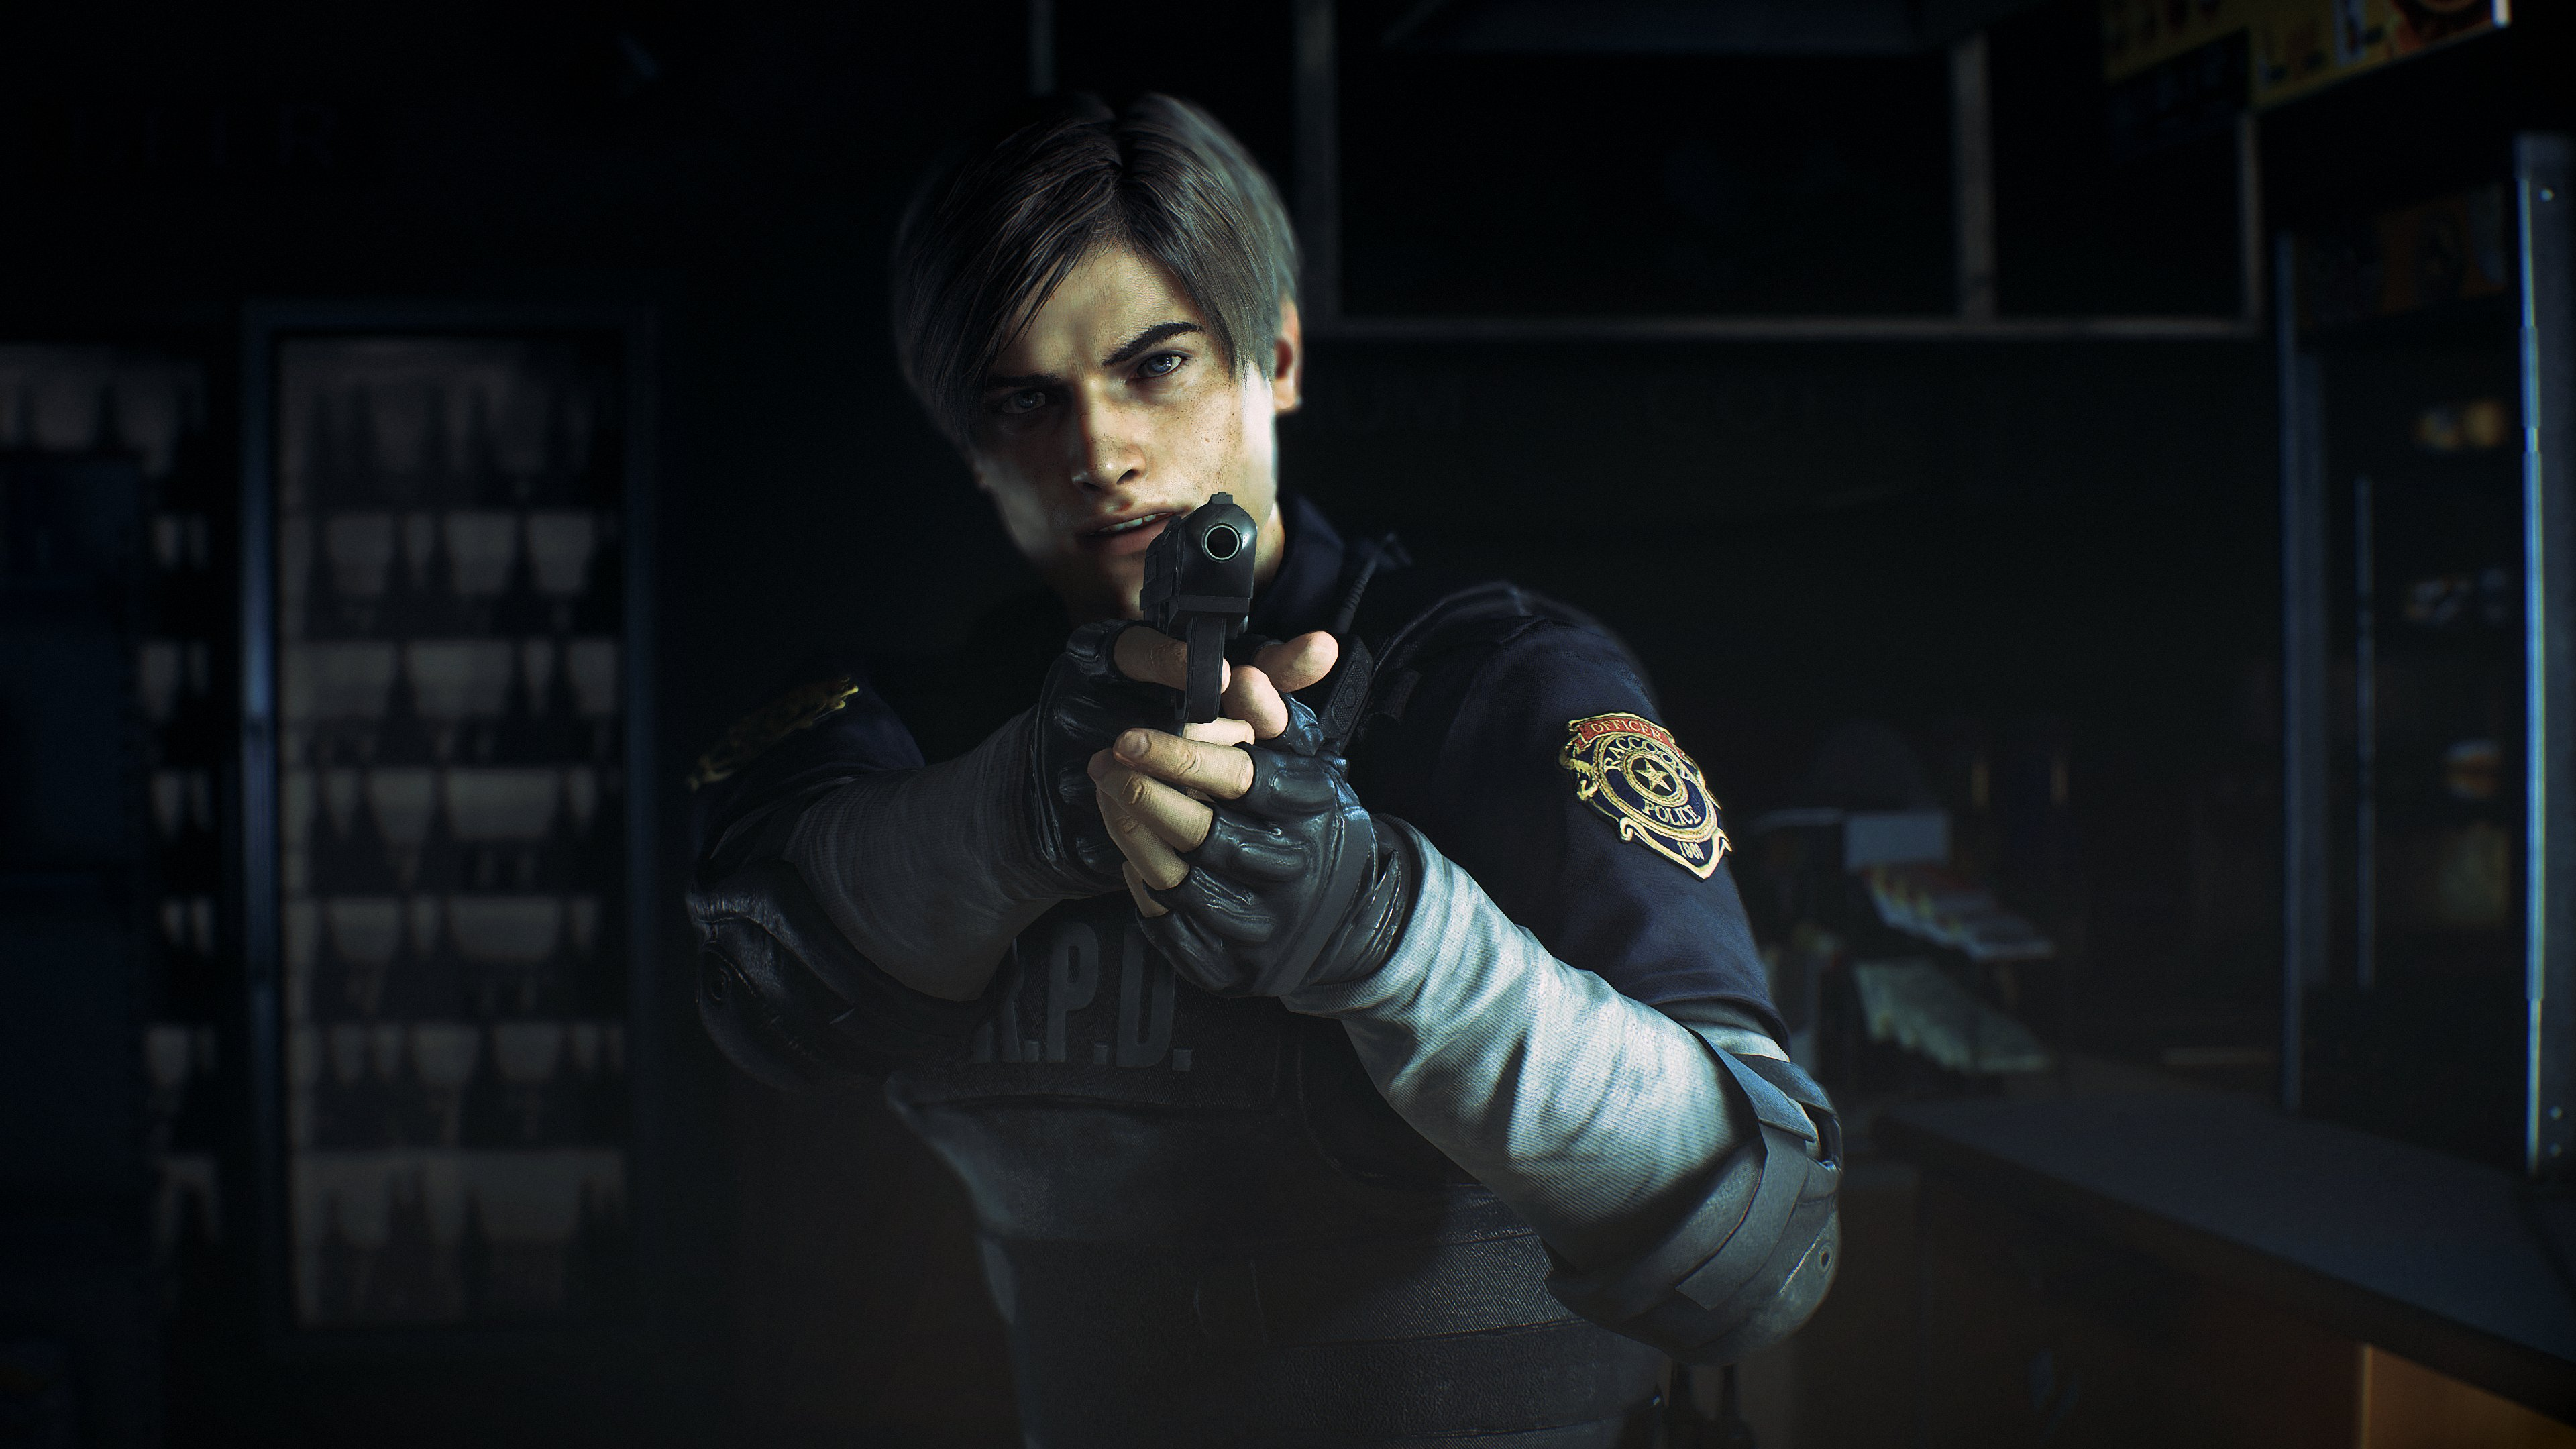 Capcom descarta lanzar Resident Evil 2 Remake en Nintendo Switch